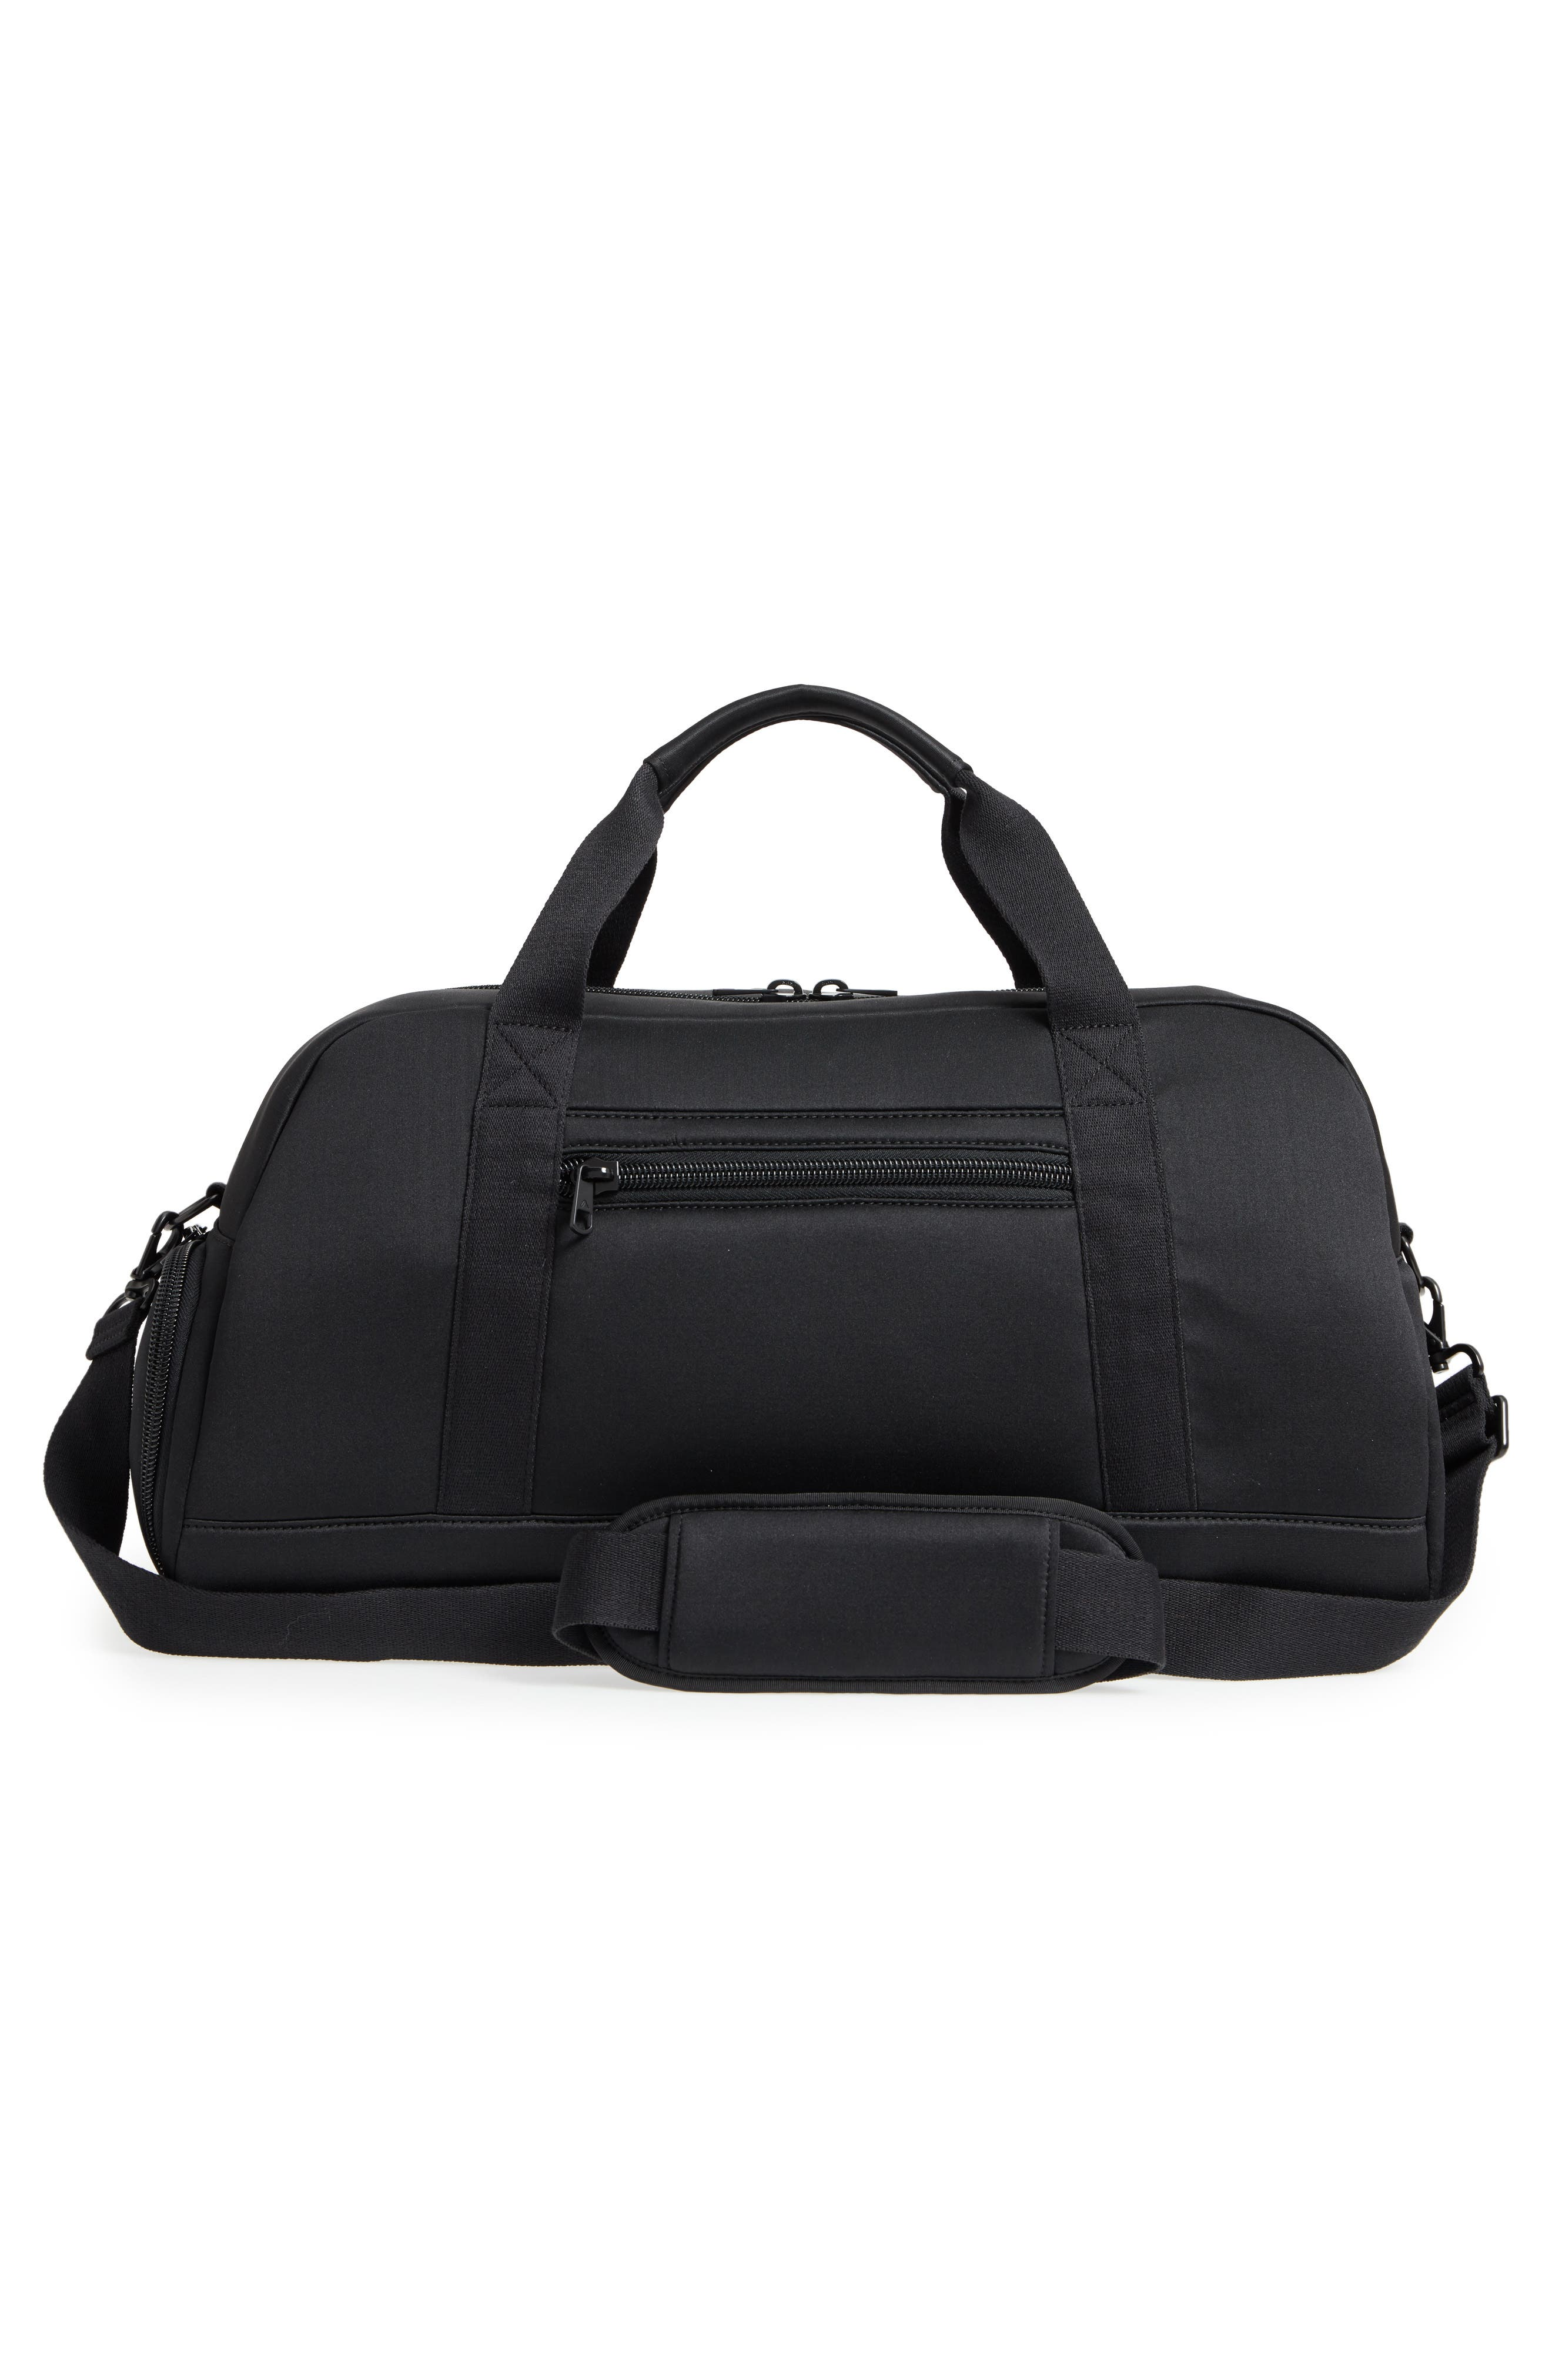 Franklin Neoprene Duffel Bag,                             Alternate thumbnail 2, color,                             BLACK